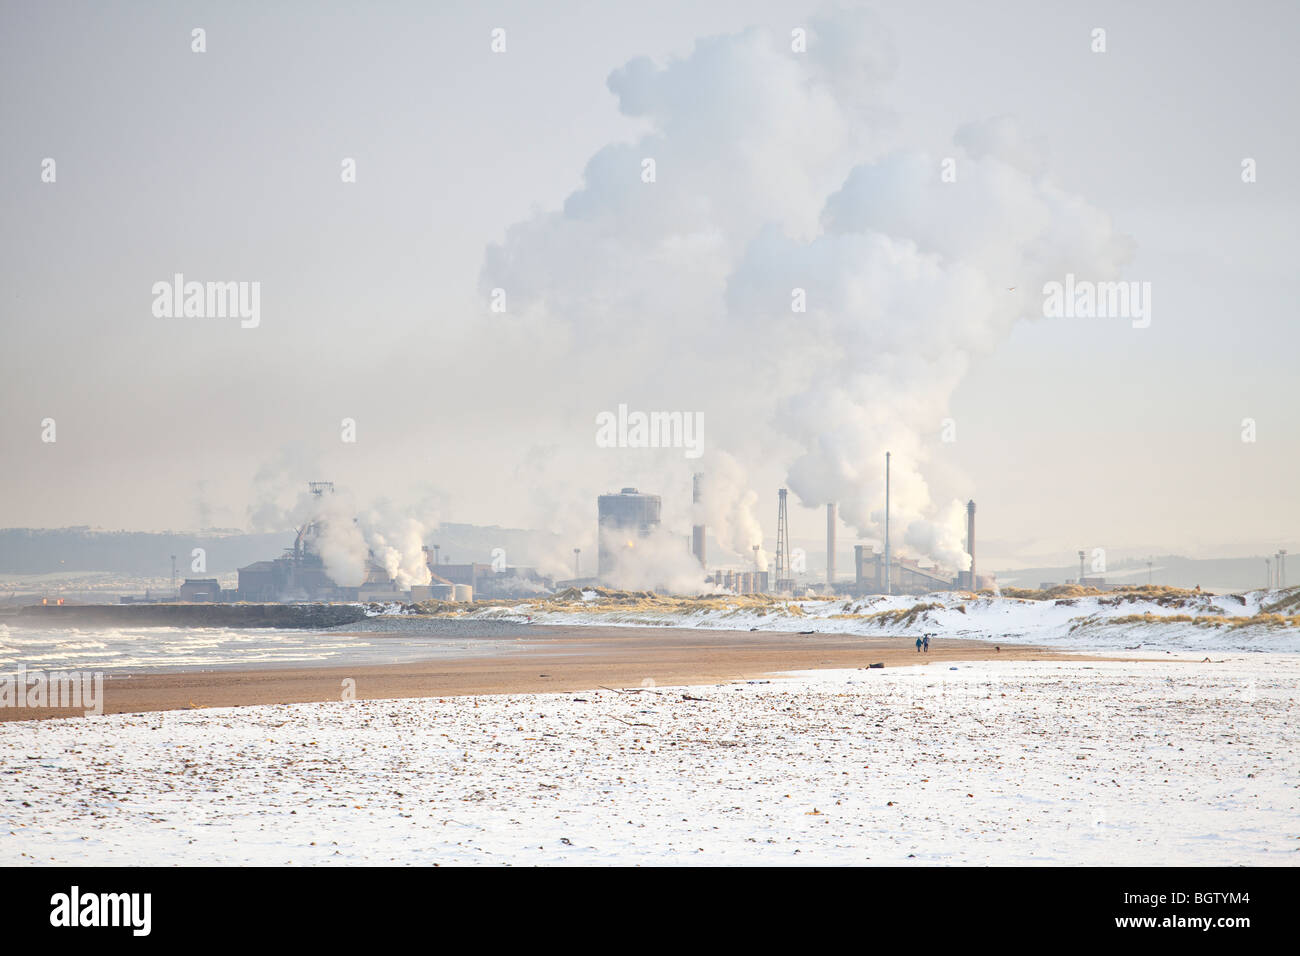 Seaton beach at low tide on a winter's day with the corus steelworks in the background - Stock Image